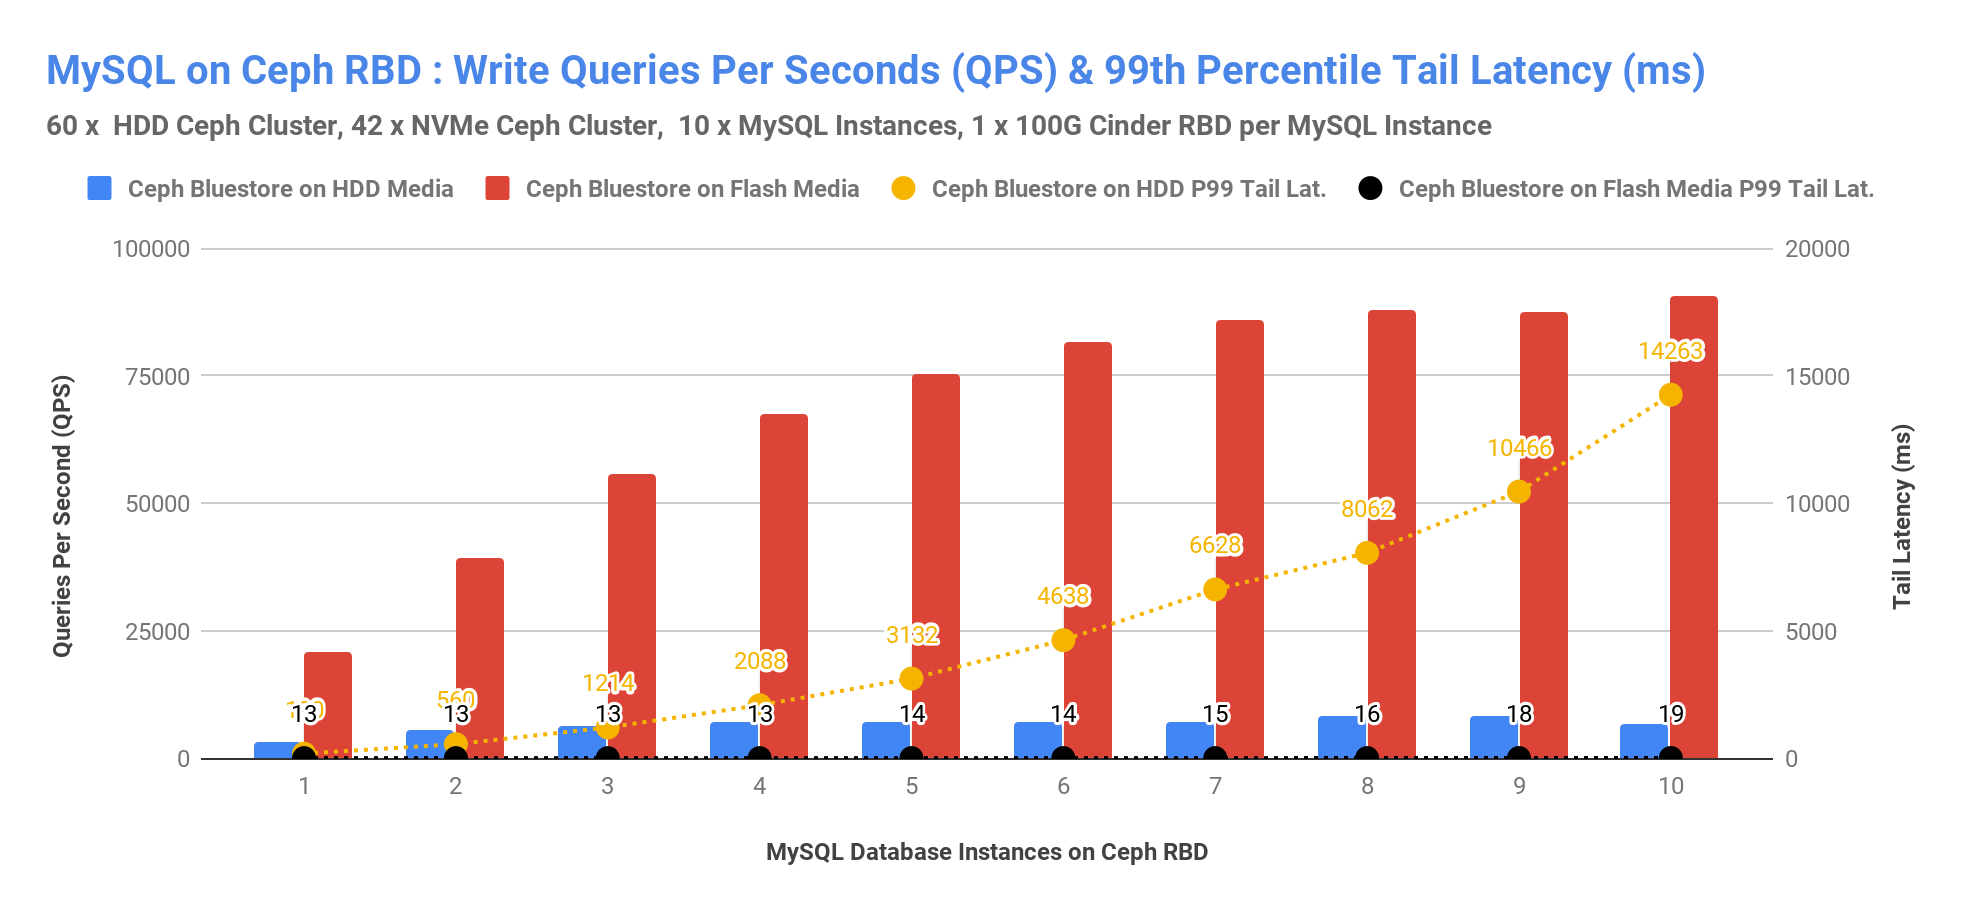 MySQL on Ceph RBD: Write Queriess Per Seconds (QPS) & 99th Percentile Tail Latency (ms)